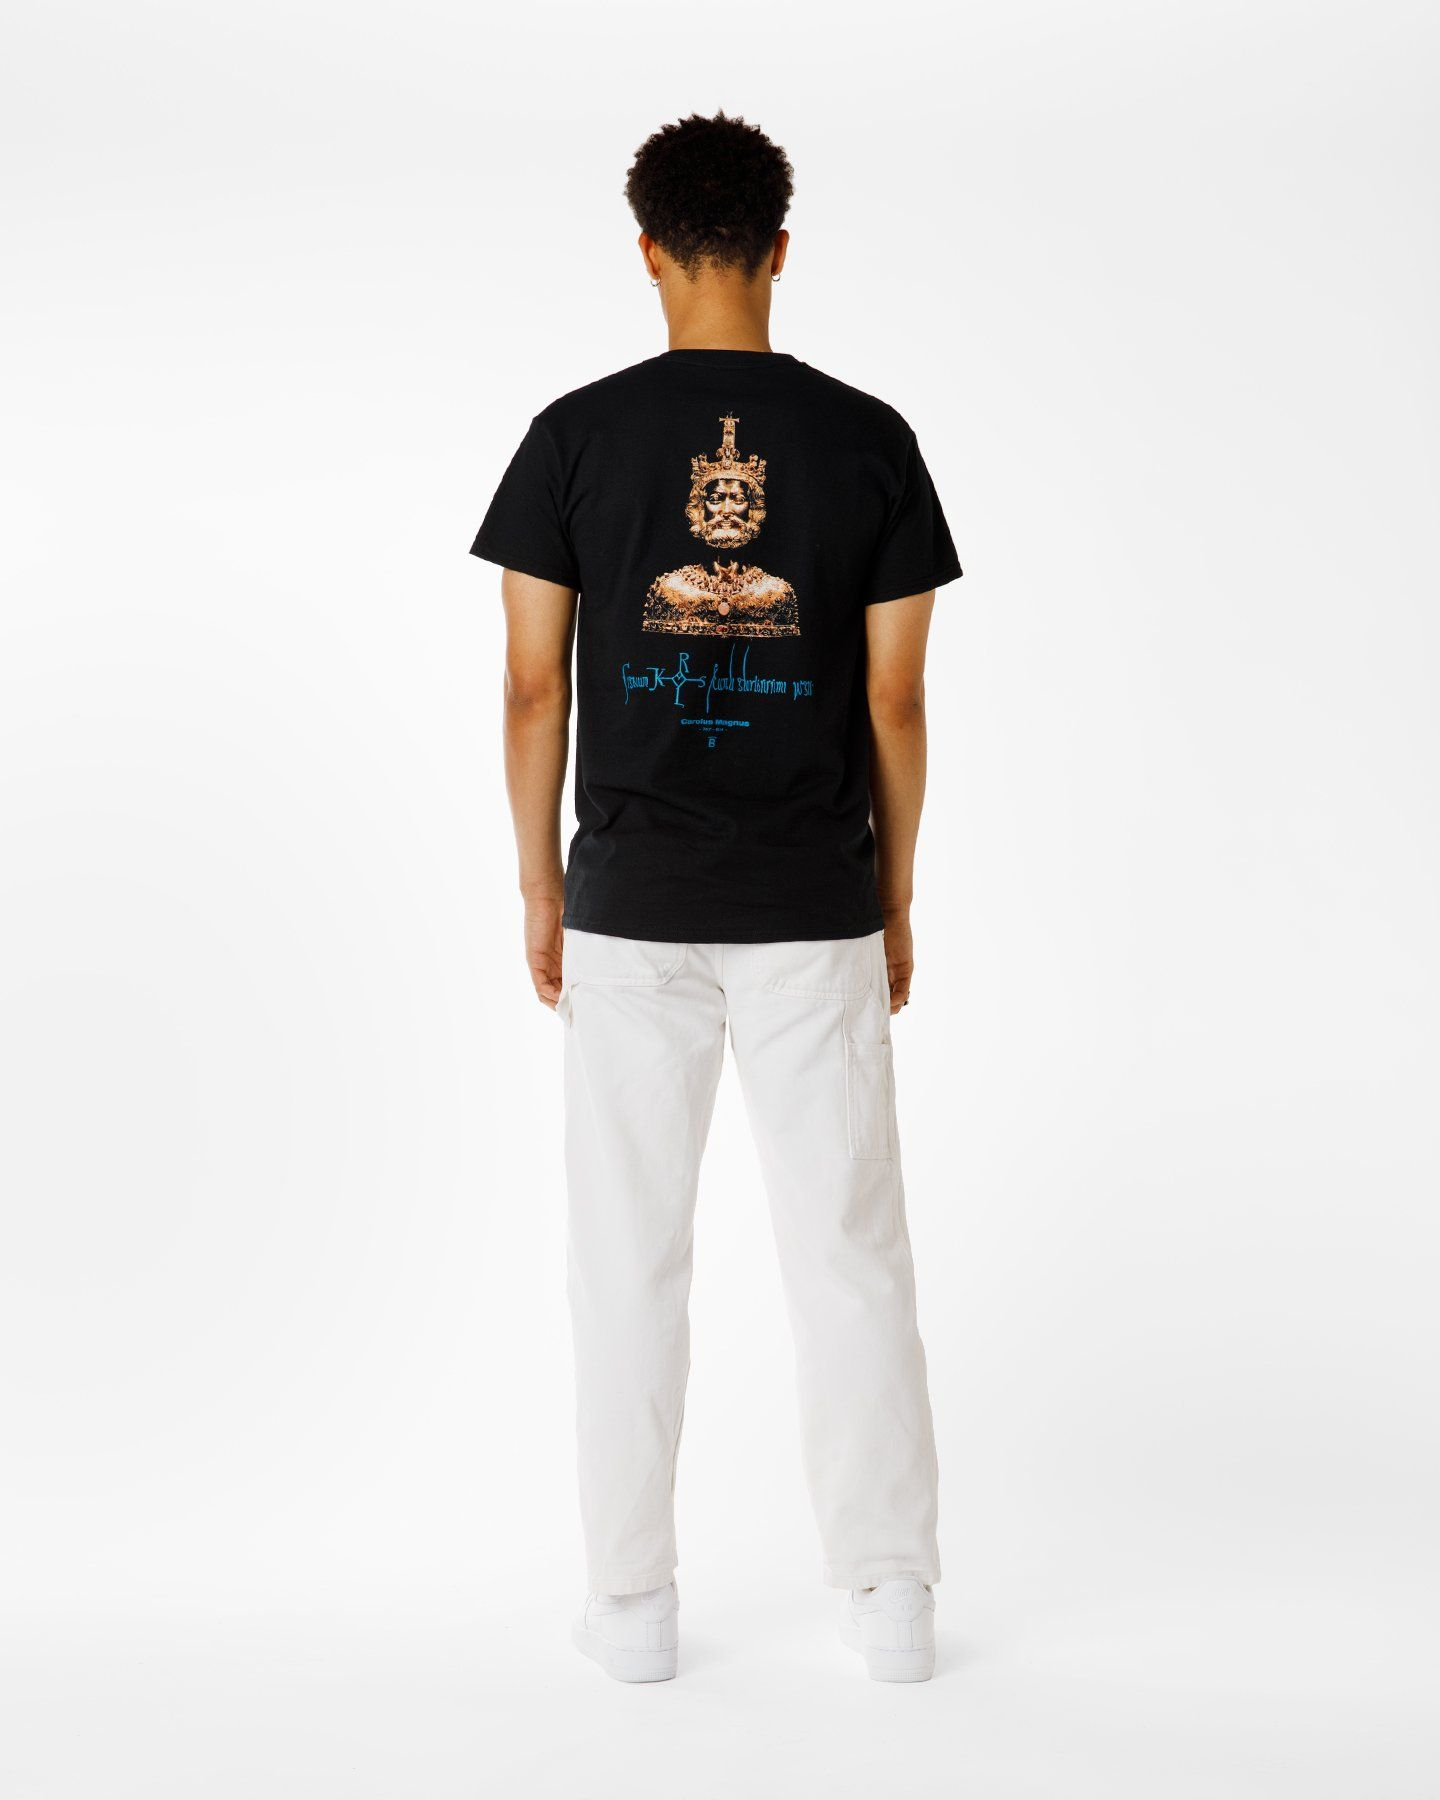 BEINGHUNTED. AS Charlemagne T-Shirt - Image 6